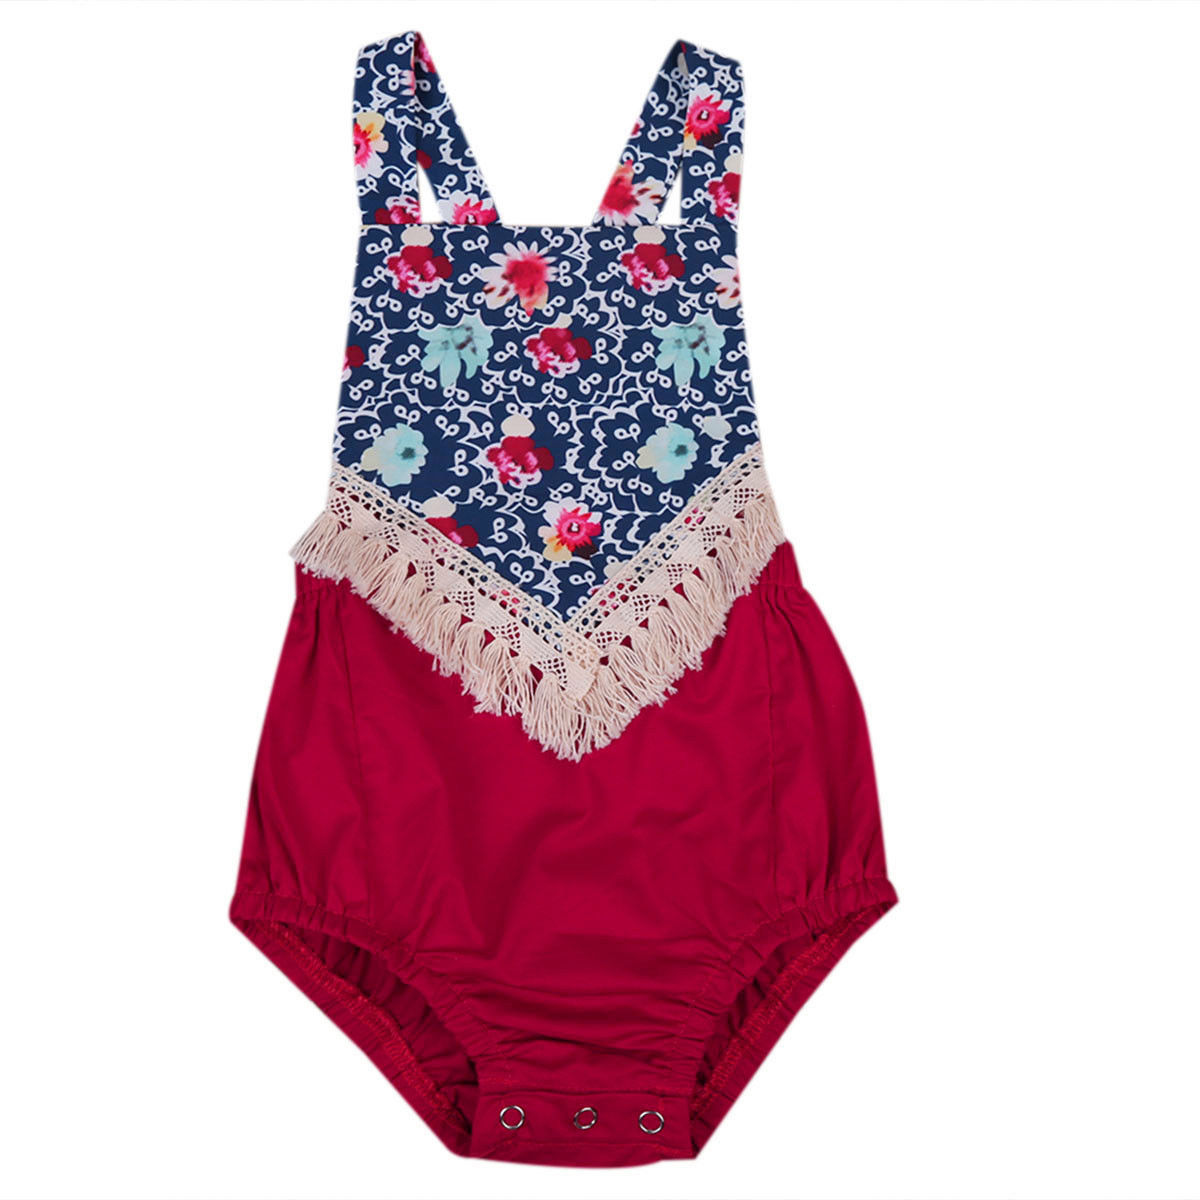 Boho Newborn Infant Baby Girls Clothes Floral Sleeveless Romper Jumpsuit Clothing Sunsuits Outfits 0-2Y